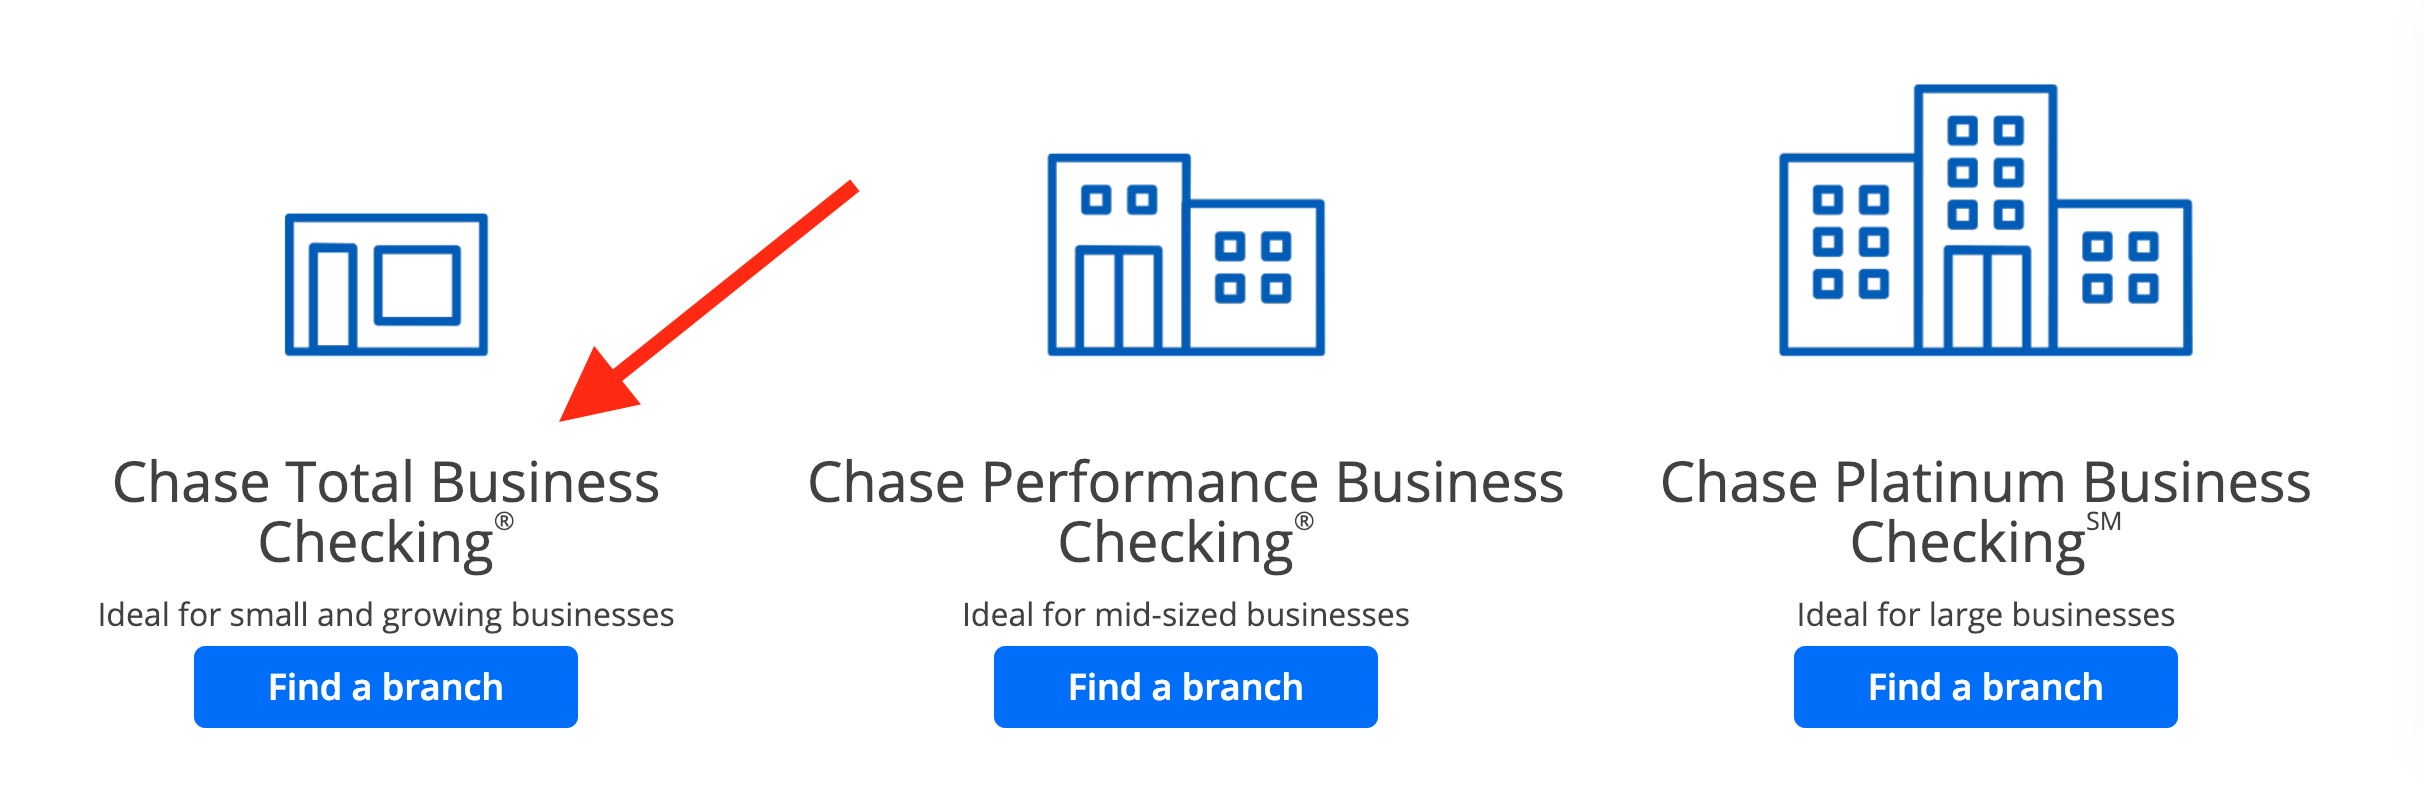 Chase Total Business Checking Accounts 2019 Update